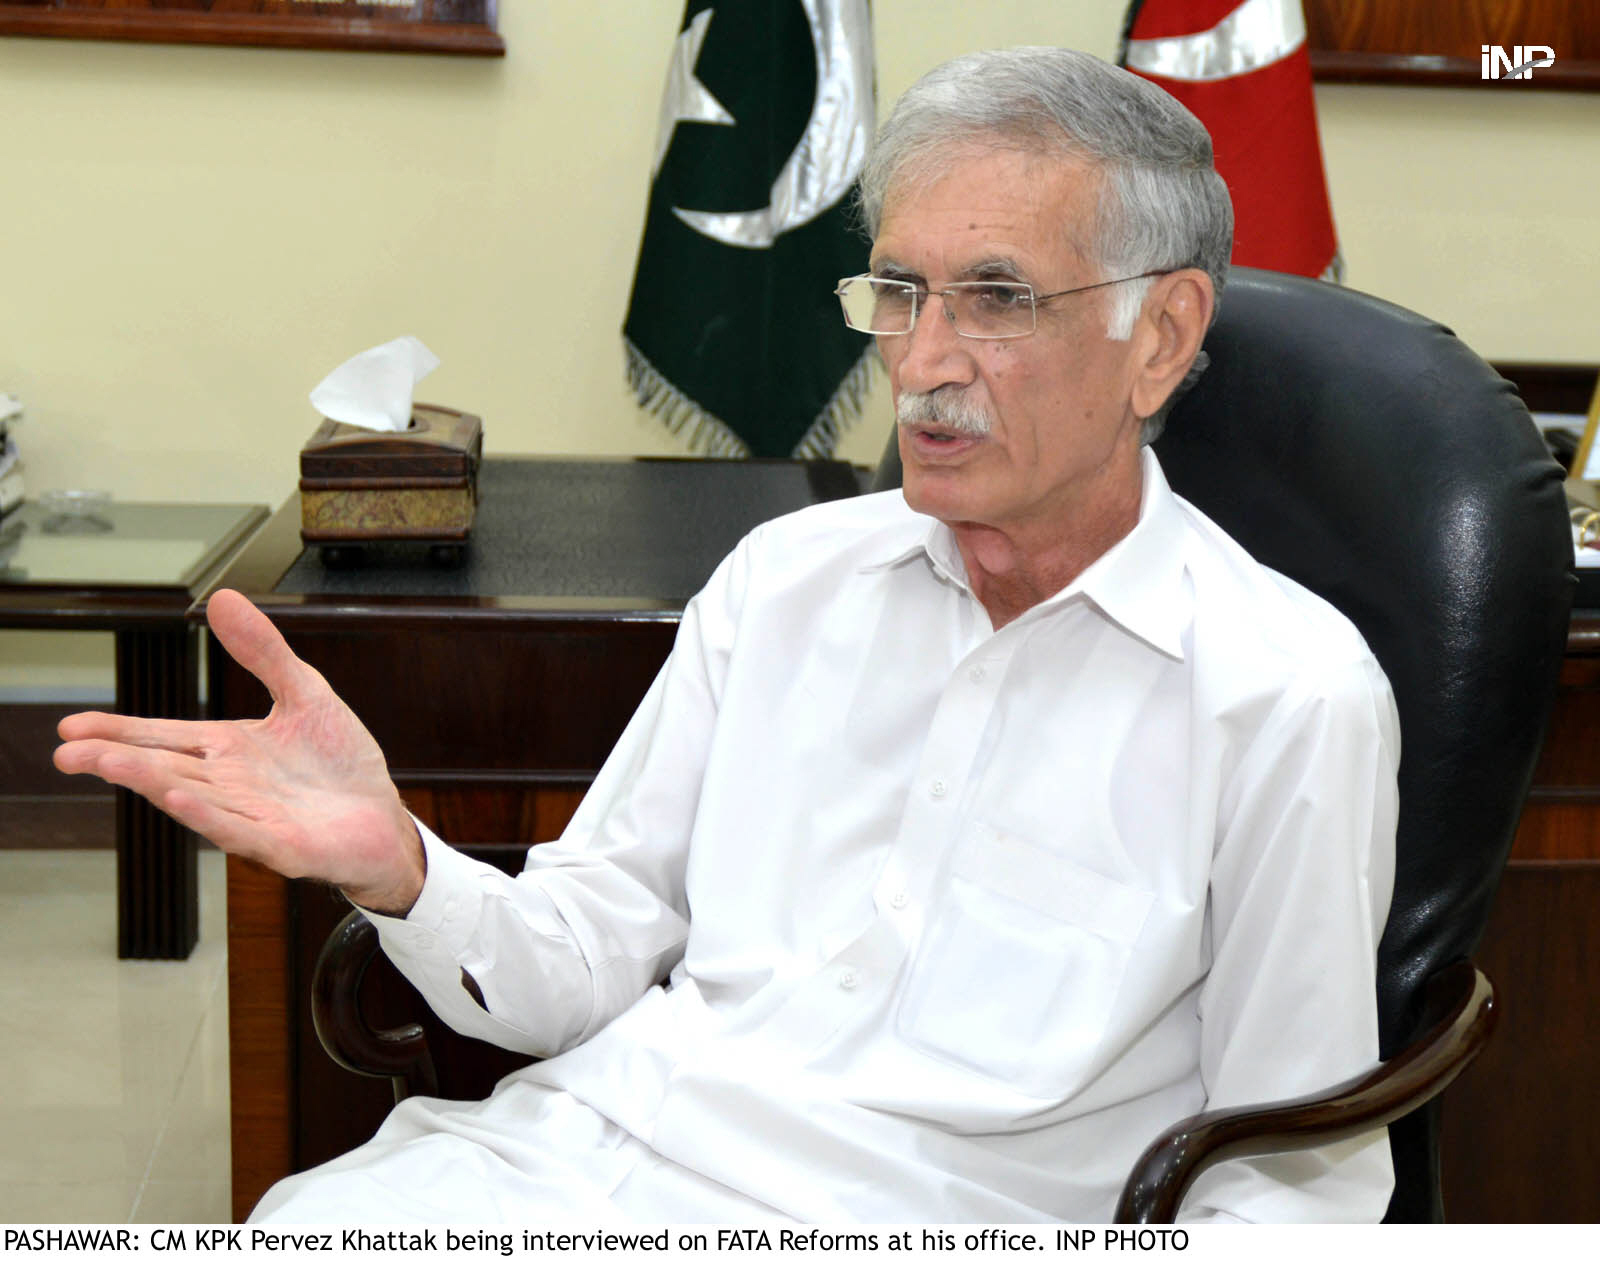 KP's coffers grown under weight